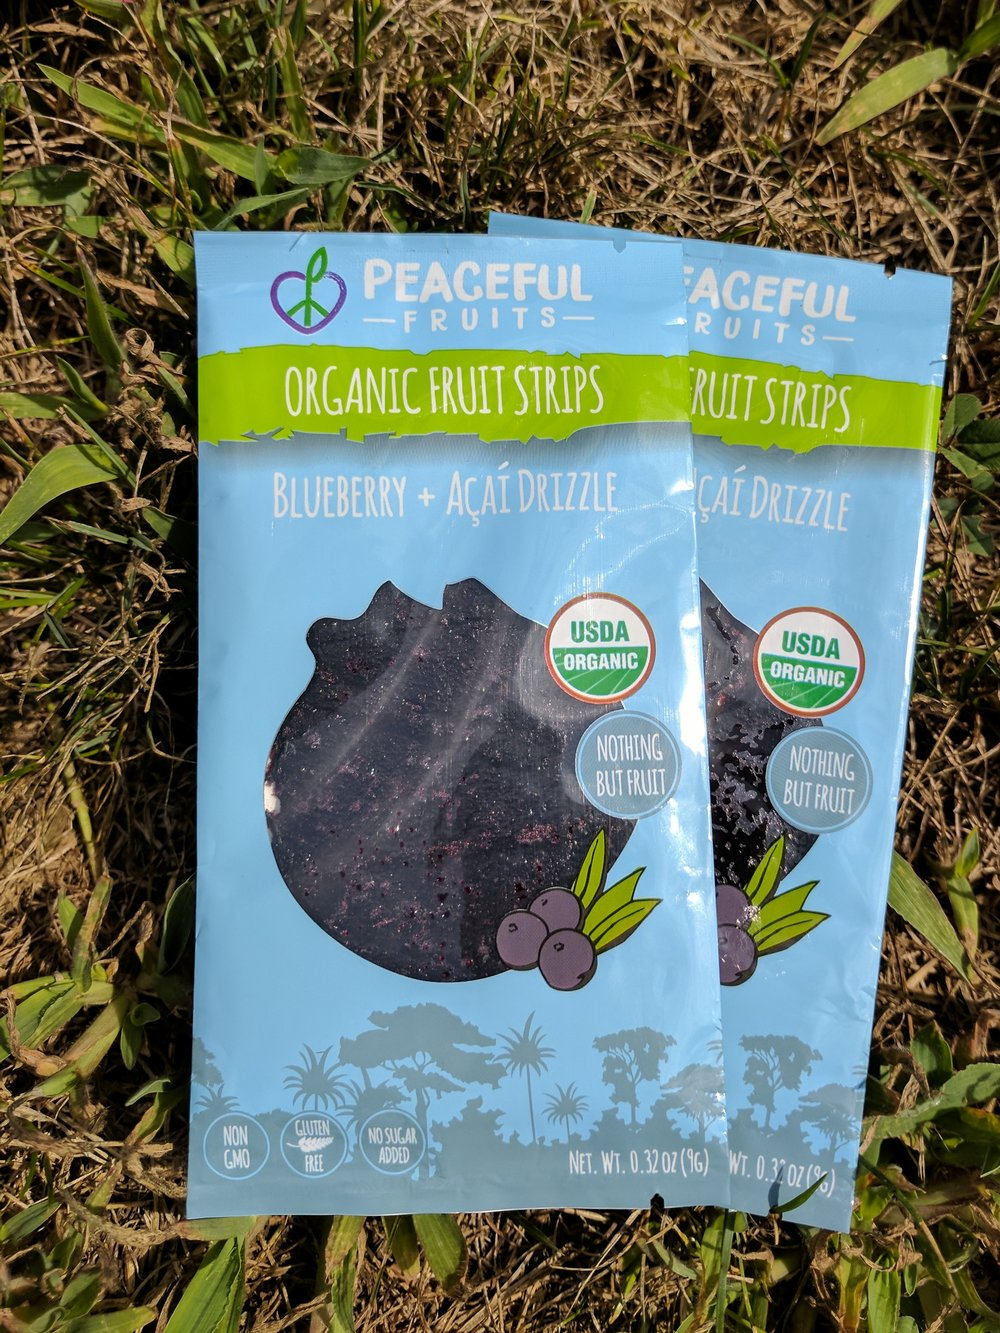 Jammy and with just the right amount of sticky, Blueberry + Acai Drizzle is a walk in the blueberry-picking woods. These whole fruit snacks have a subtle sweetness that leaves you with the cyan blue tongue tattoo of nature.